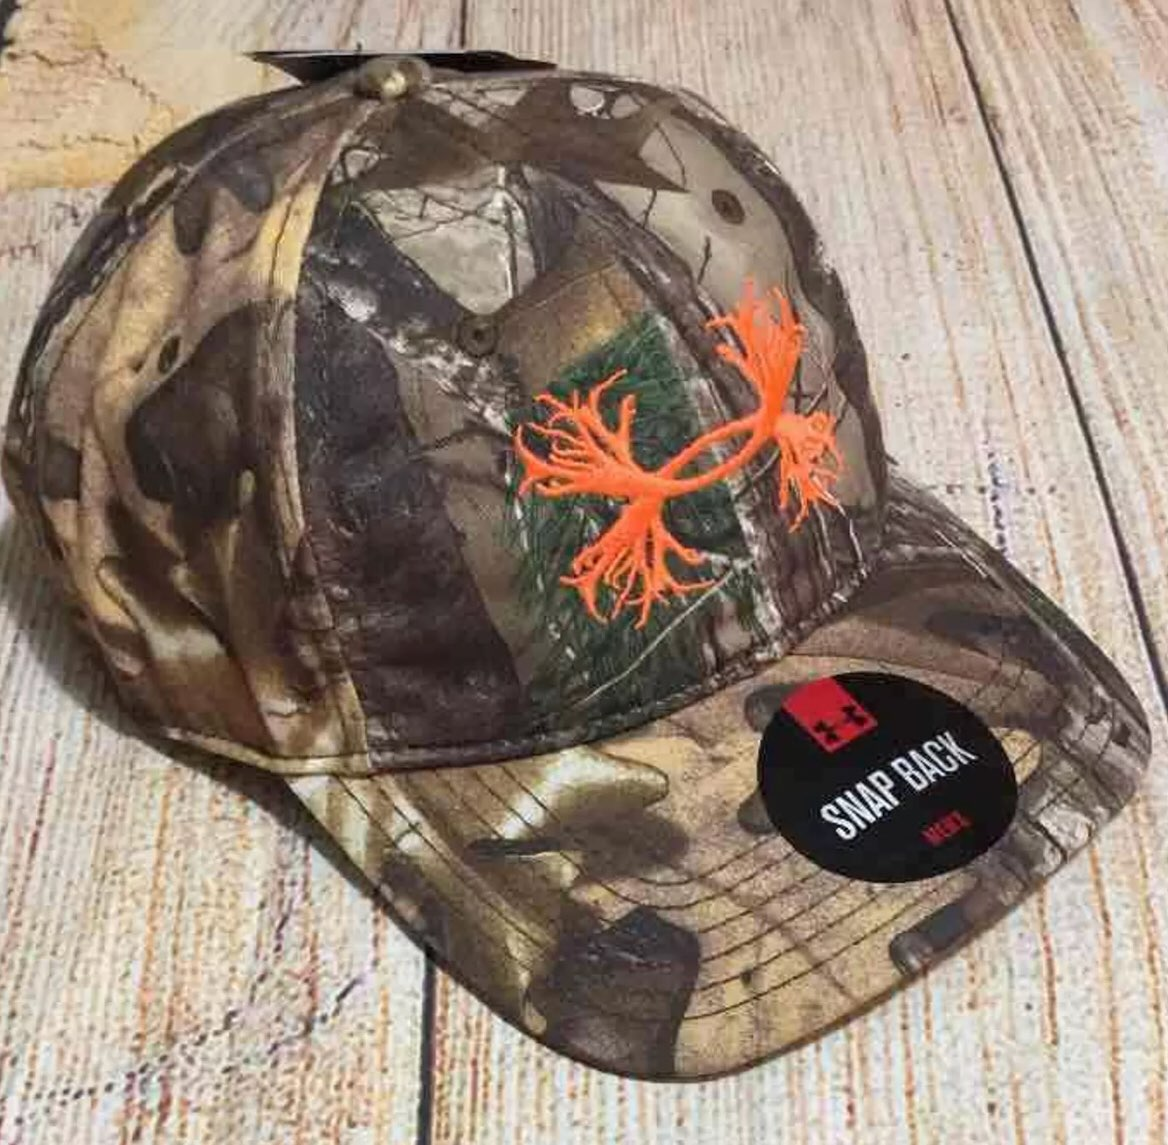 Cheap under armour antler camo hat Buy Online  OFF71% Discounted 18d0d3dbf7f